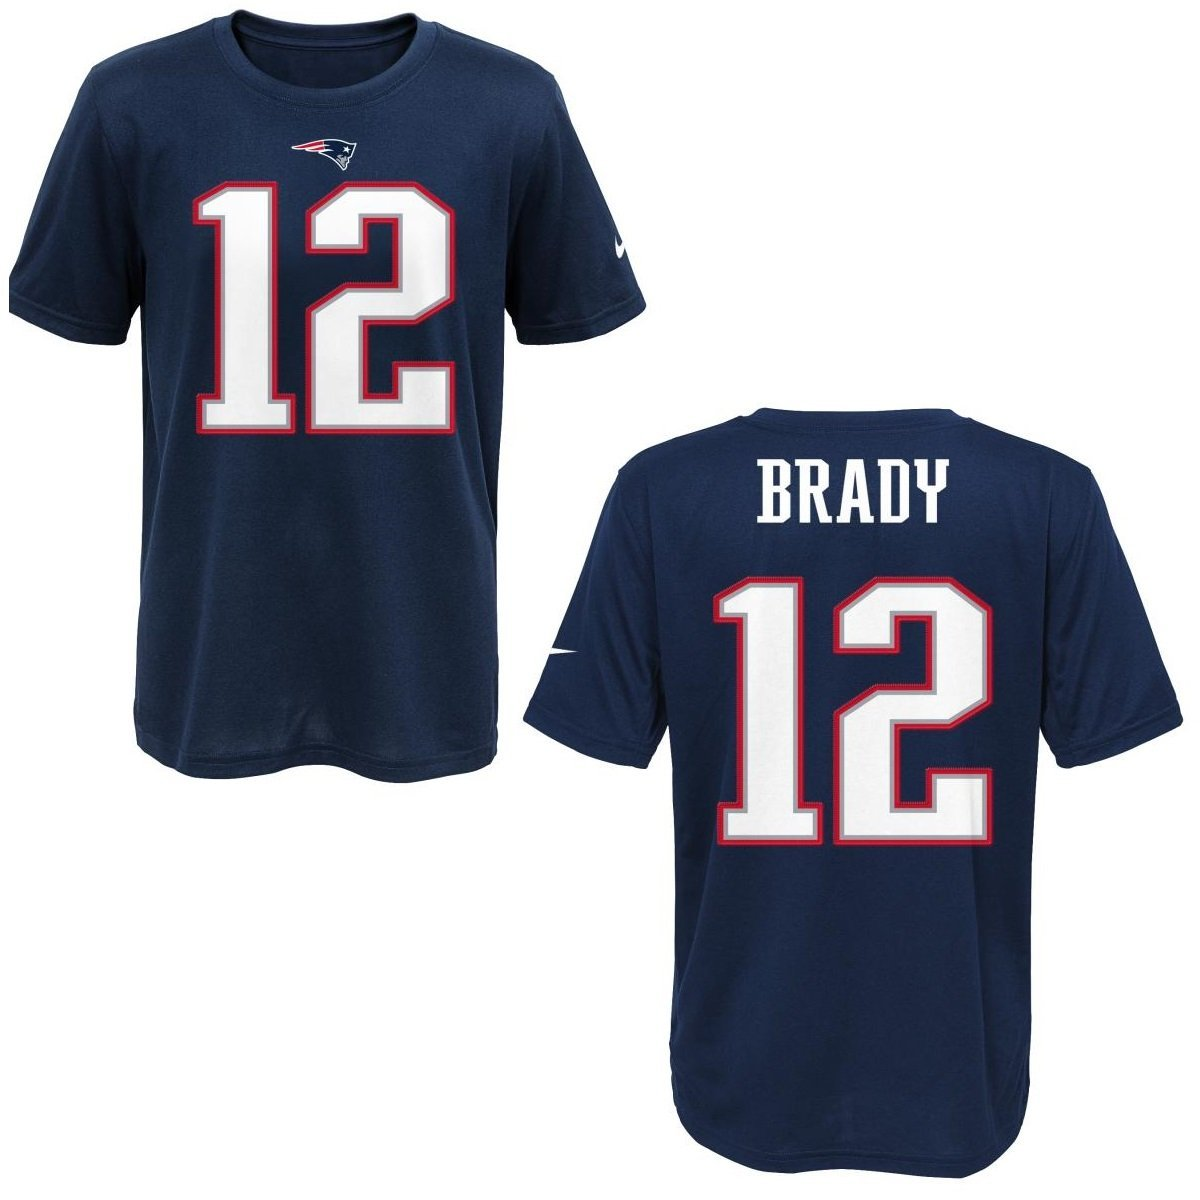 aa300597a Get Quotations · New England Patriots Tom Brady Blue Youth Nike Player Pride  Tee2 T-Shirt (Youth